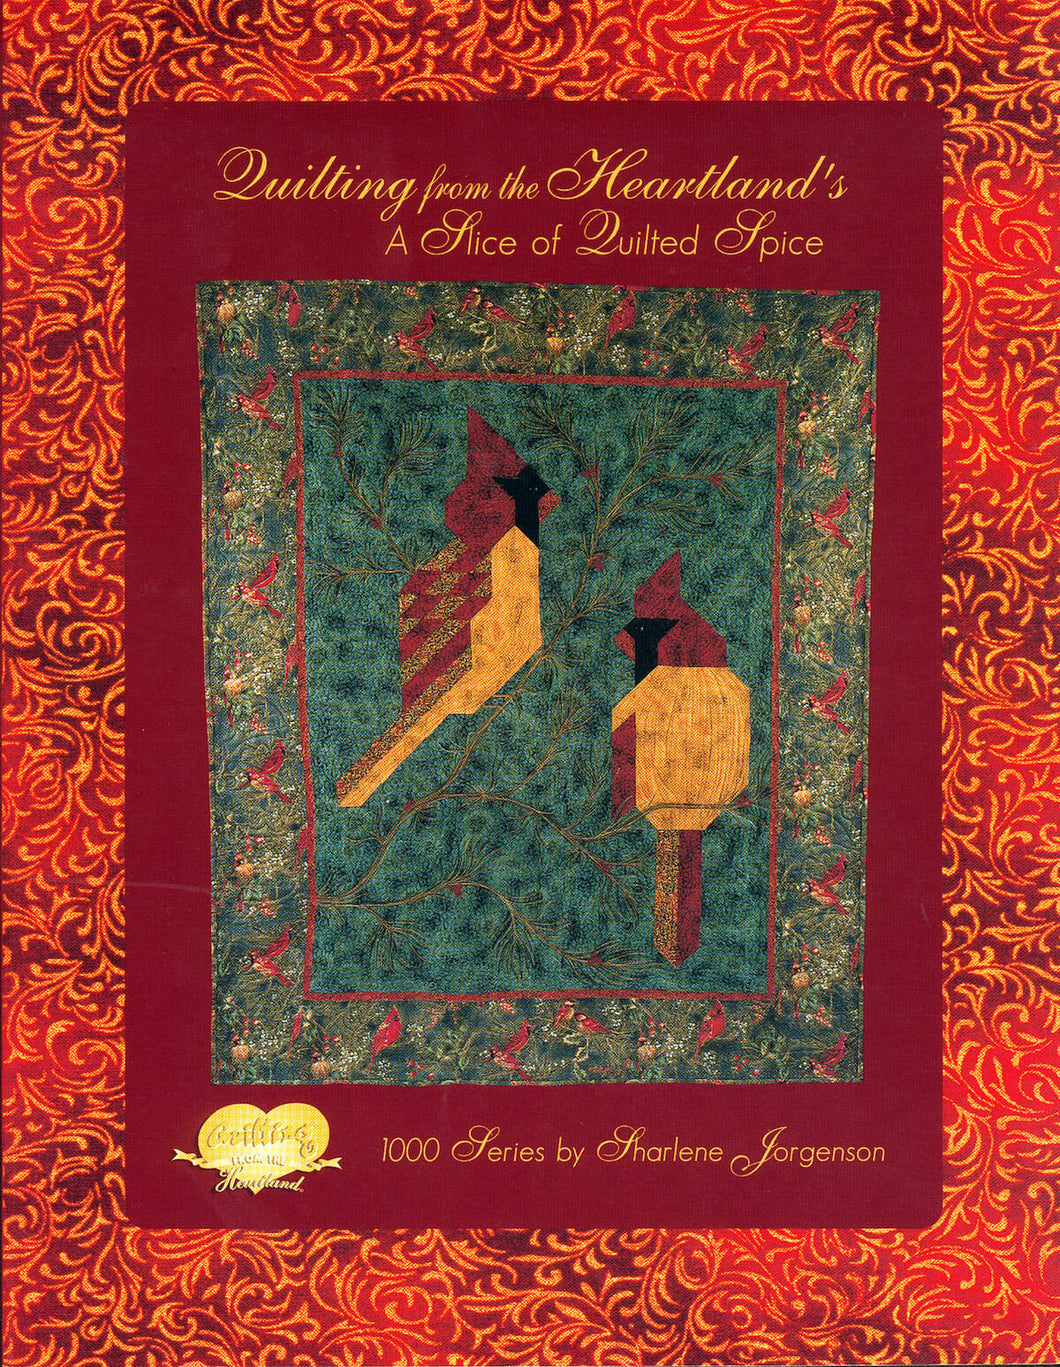 cover of A Slice of Quilted Spice book